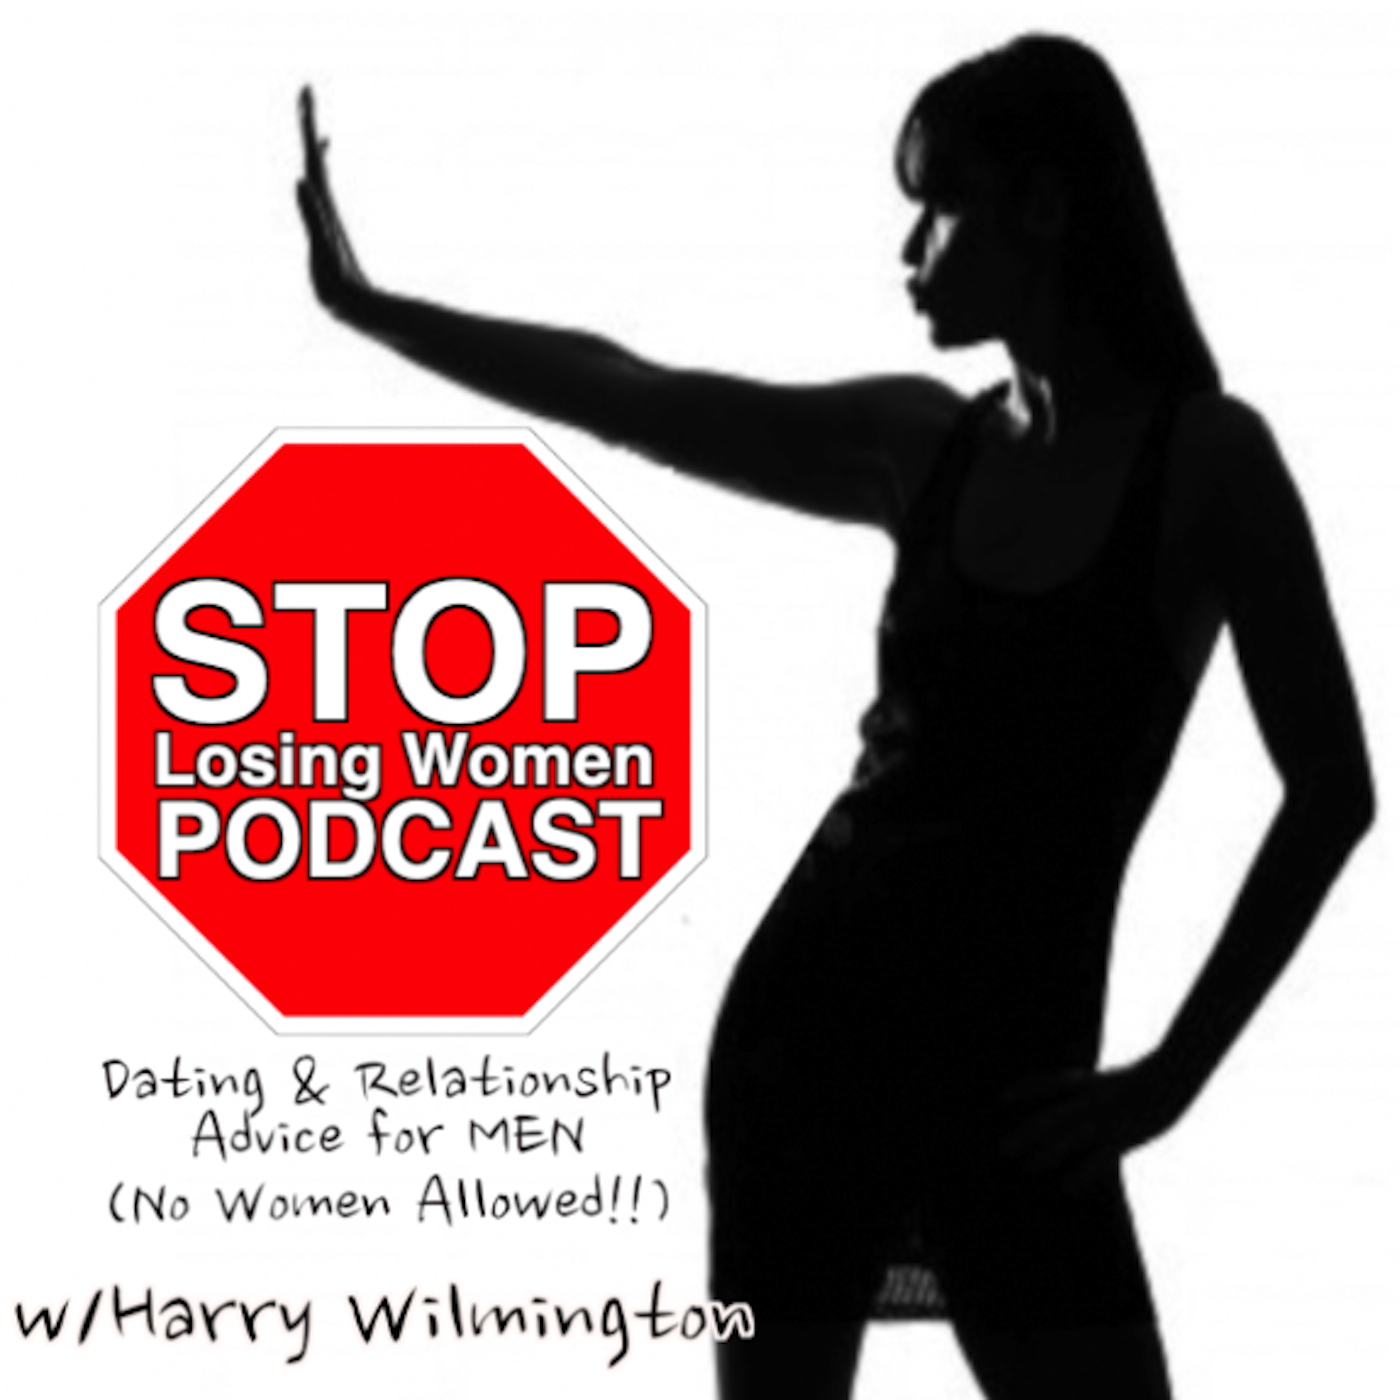 Podcasts on christian dating relationships